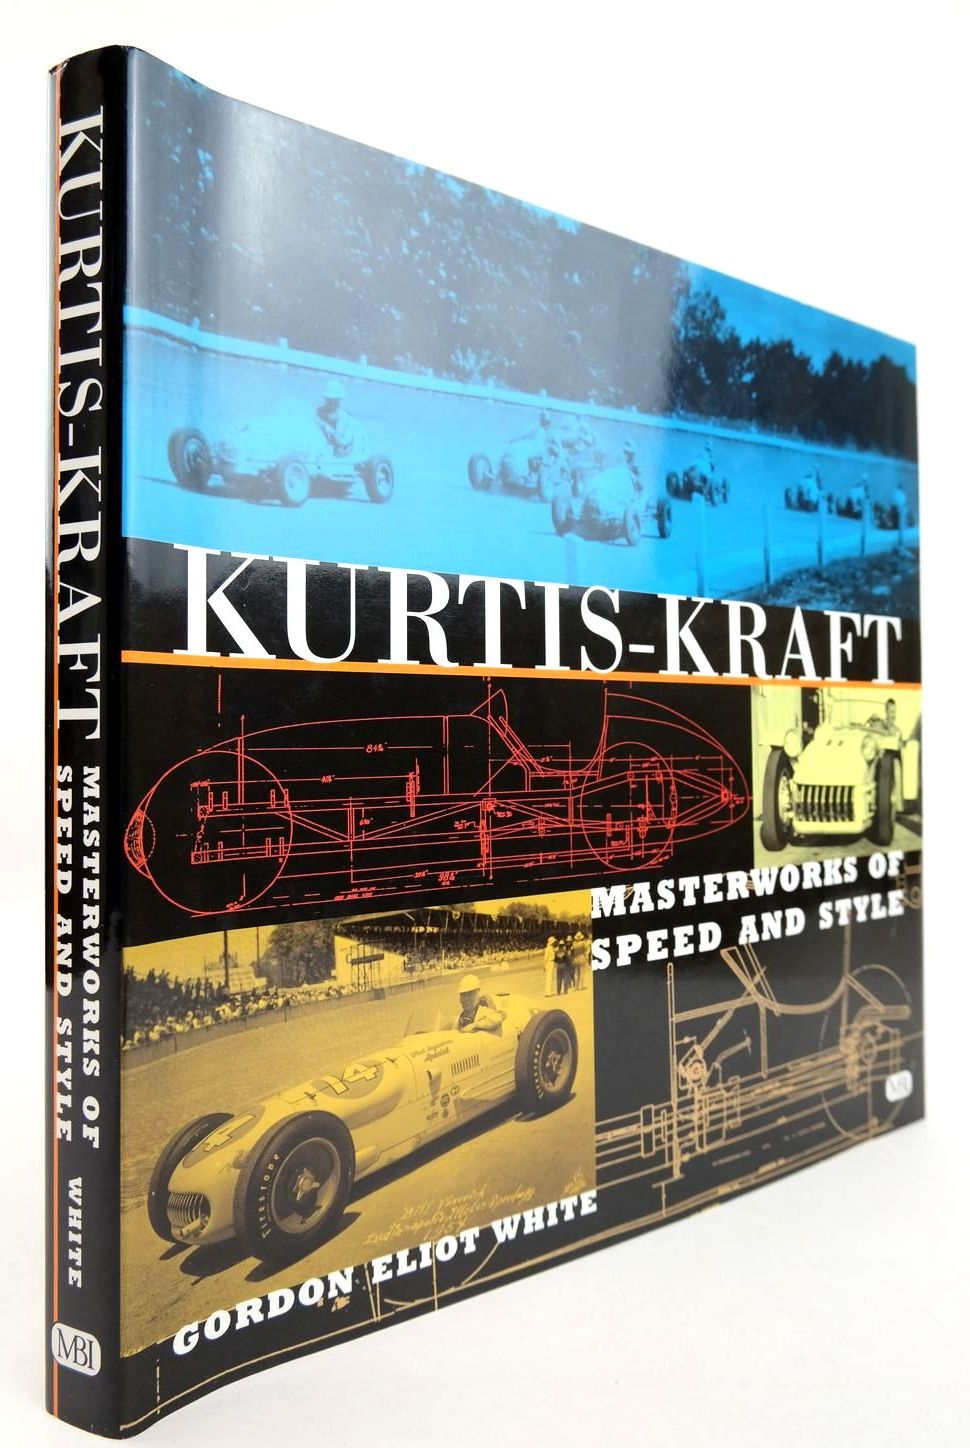 Photo of KURTIS-KRAFT MASTERWORKS OF SPEED AND STYLE written by White, Gordon Eliot published by MBI Publishing (STOCK CODE: 2132766)  for sale by Stella & Rose's Books